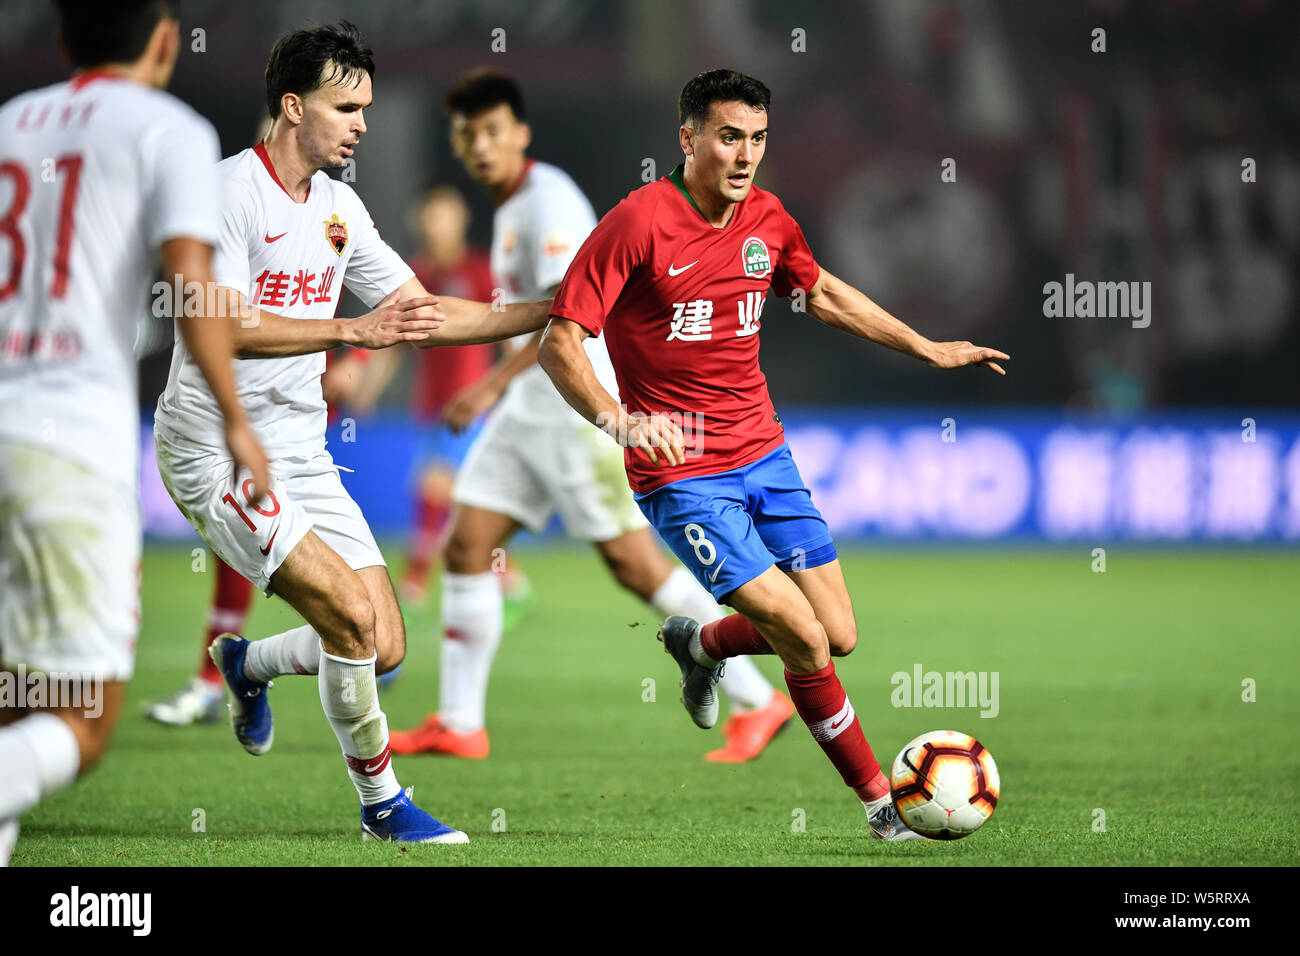 English-born Taiwanese football player Tim Chow, right, of Henan Jianye passes the ball against Norwegian football player Ole Selnaes of Shenzhen F.C. Stock Photo